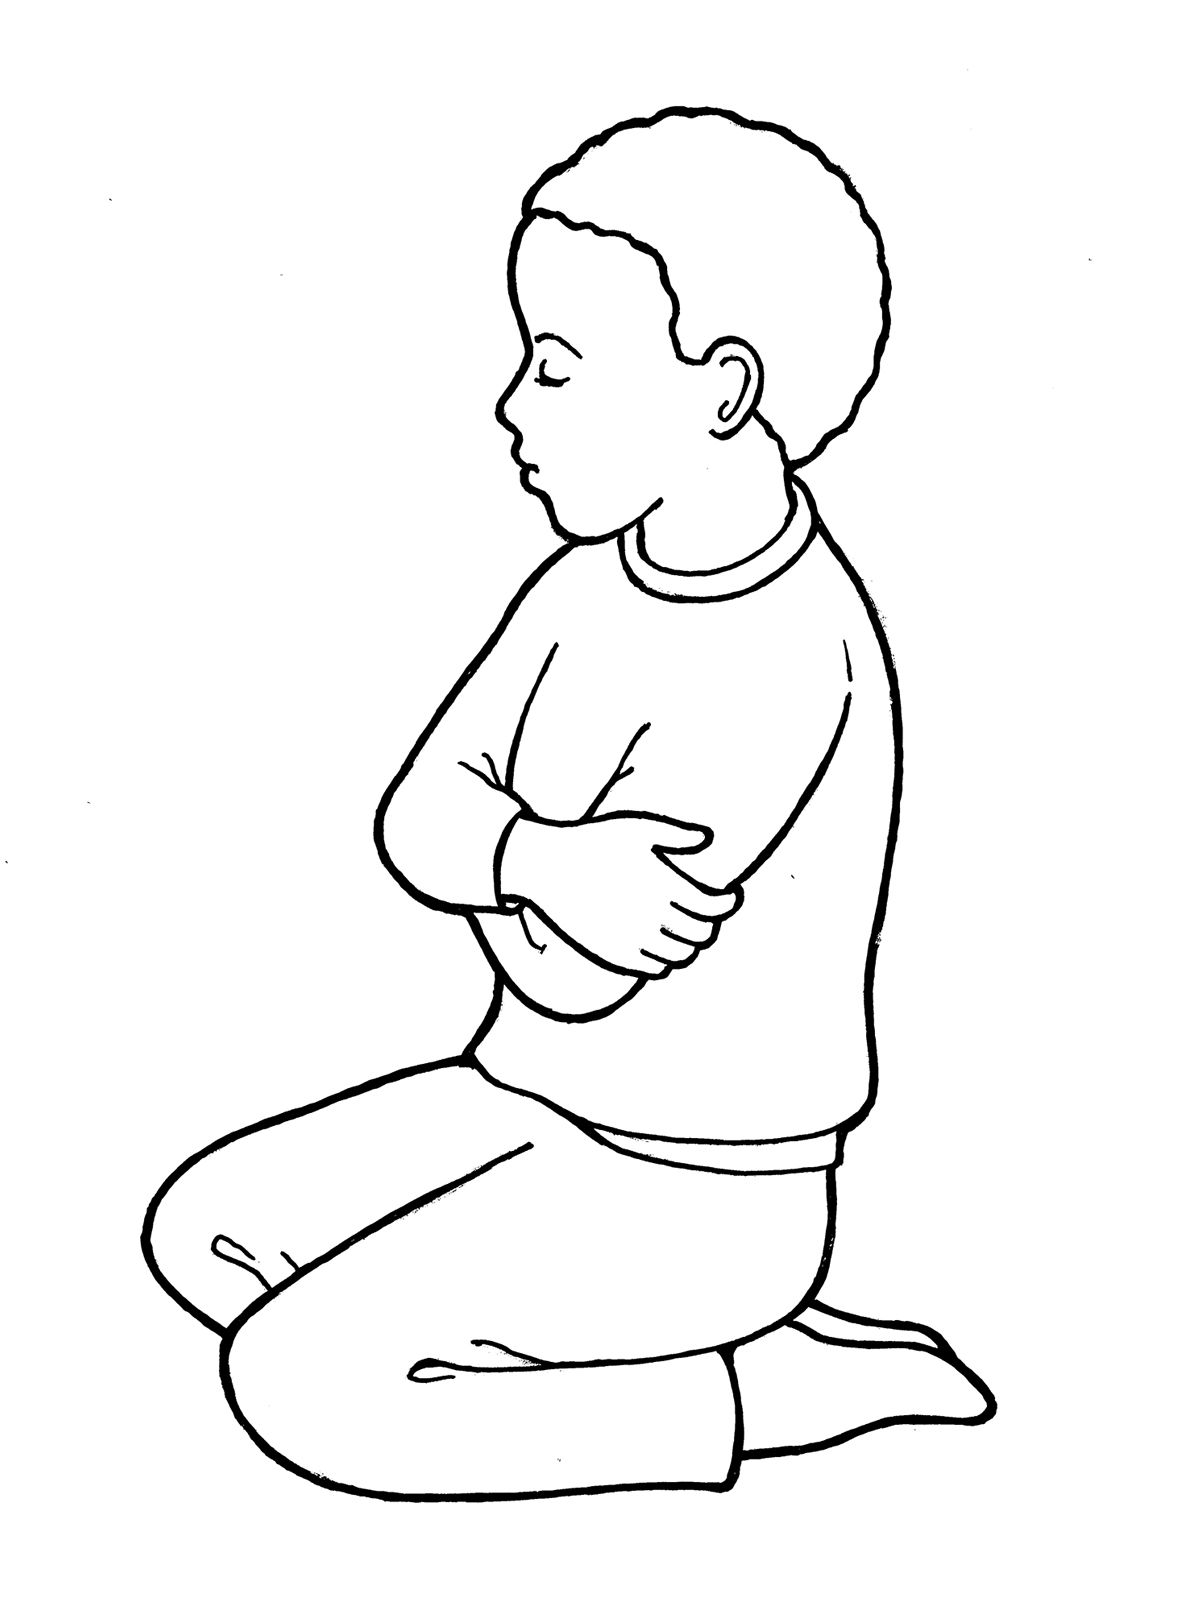 1200x1600 fascinating child praying coloring page lds appealing kneeling